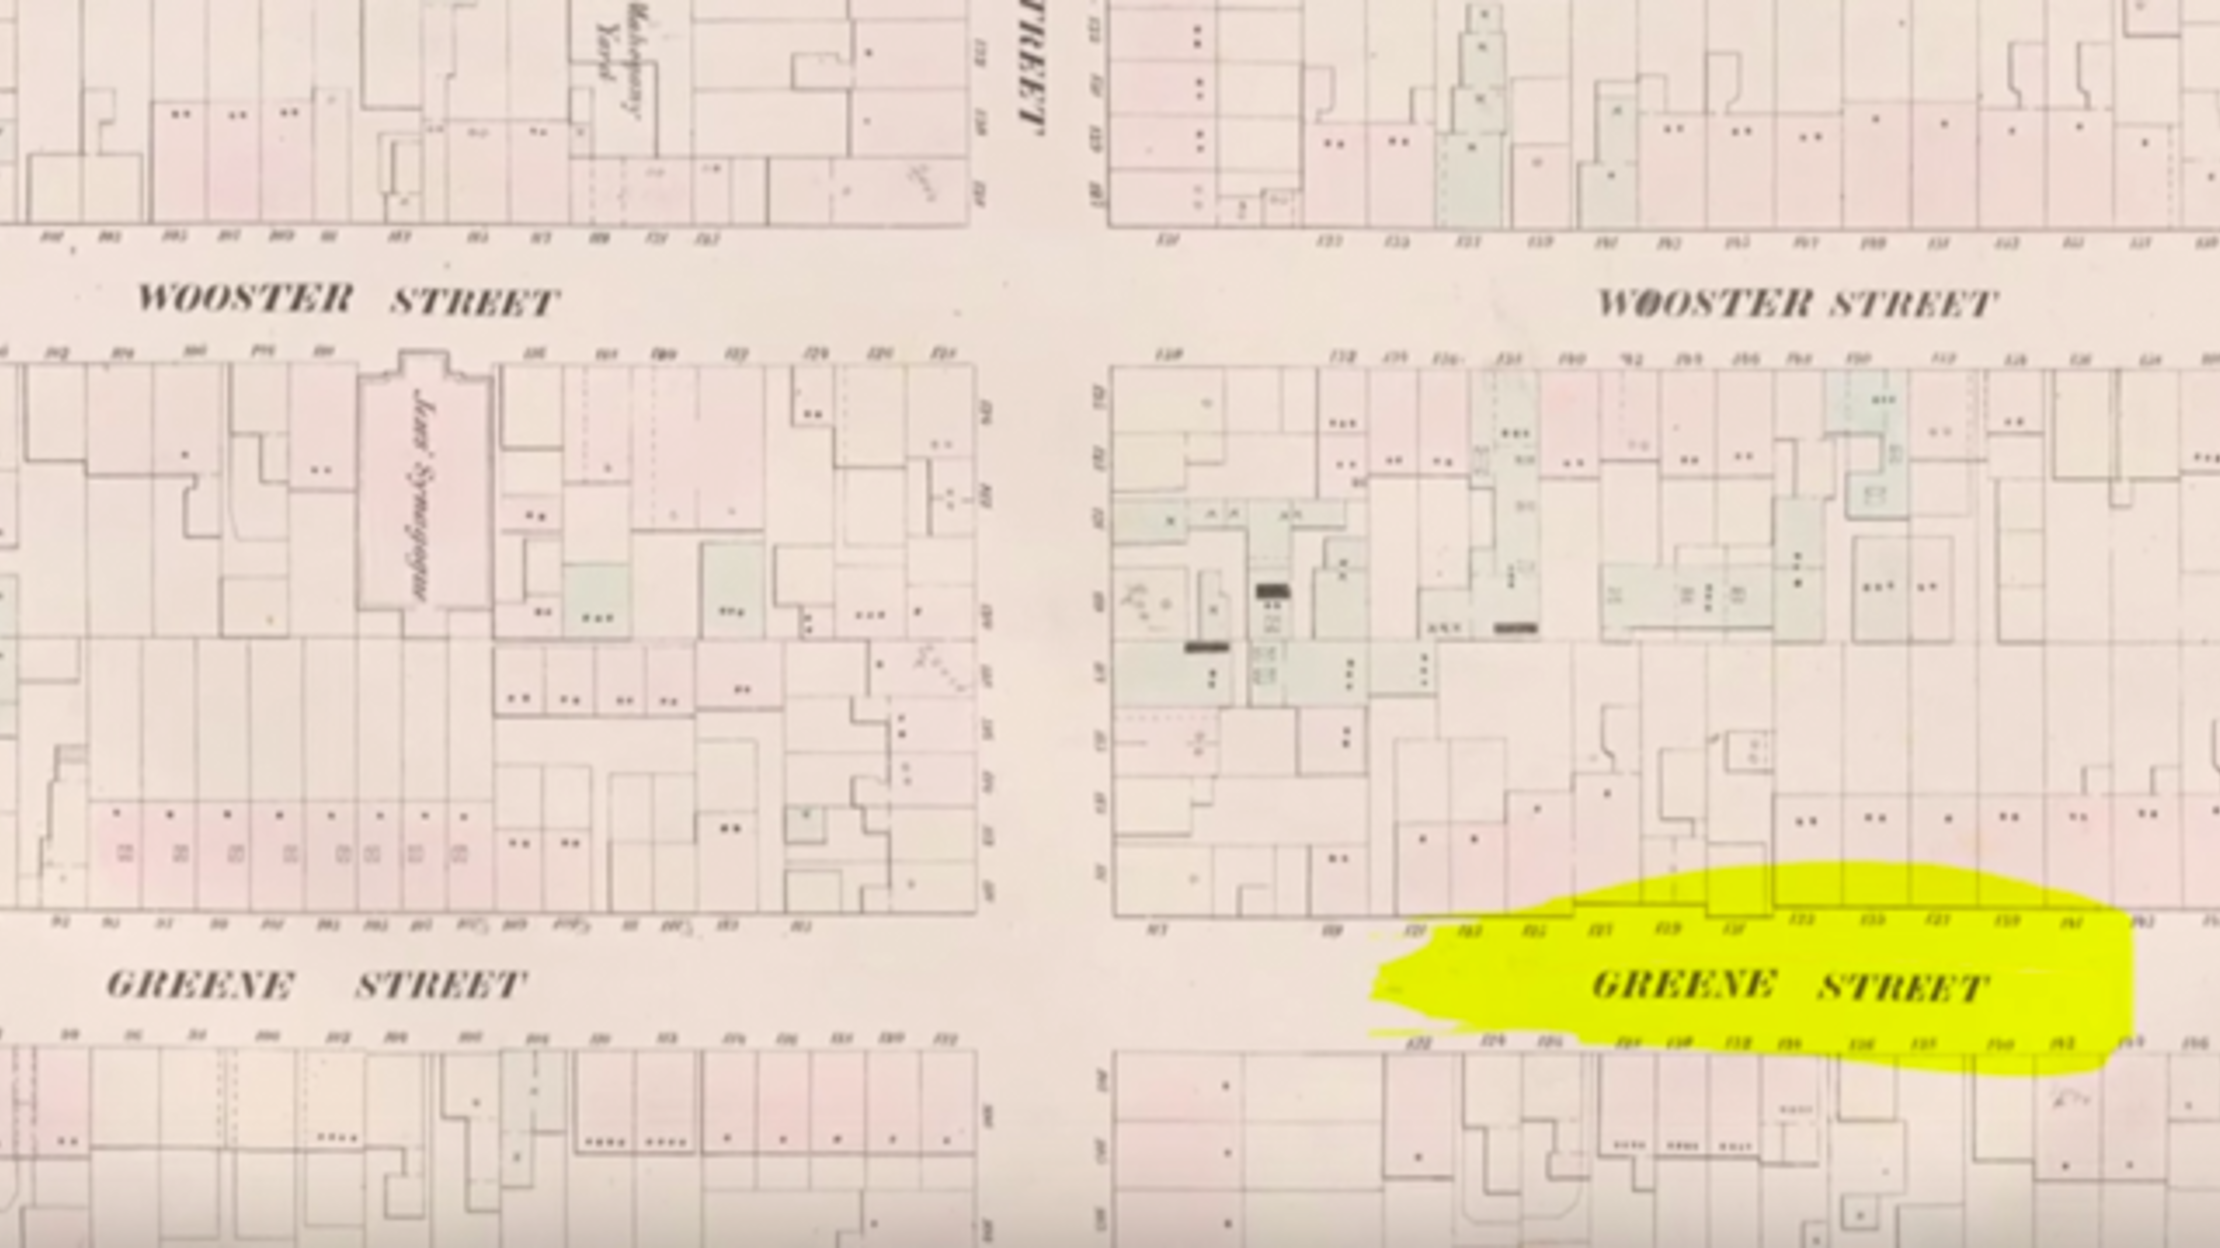 Historian Traces 400 Years of History on a Single New York City Block